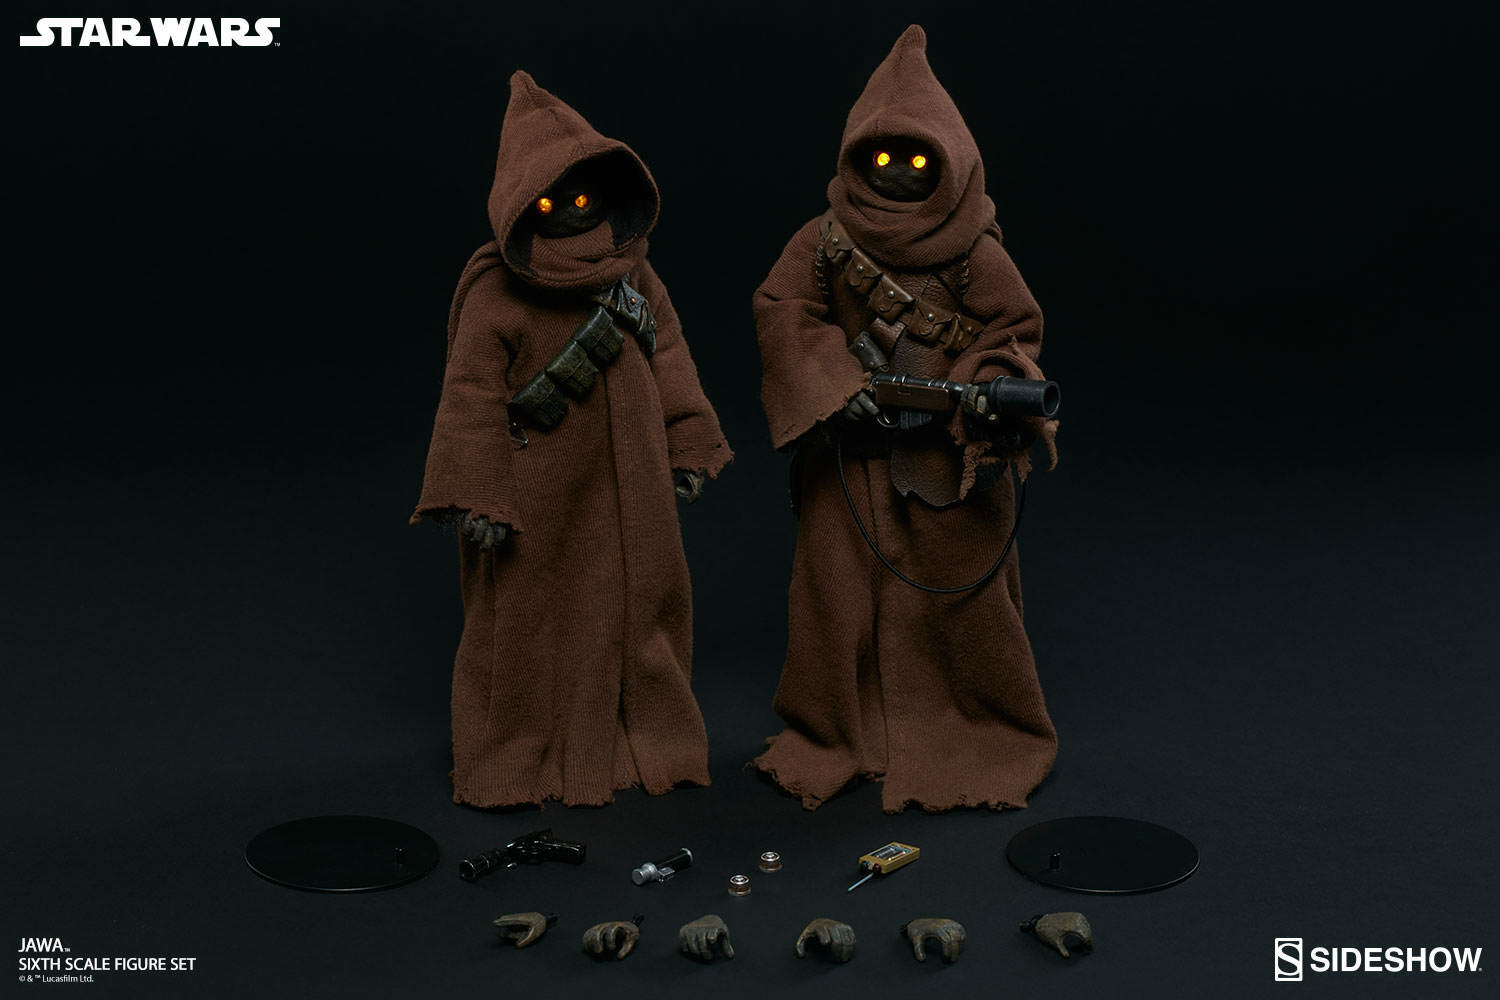 1 6 Scale Star Wars Jawa Set of 2 Figures by Sideshow Collectibles